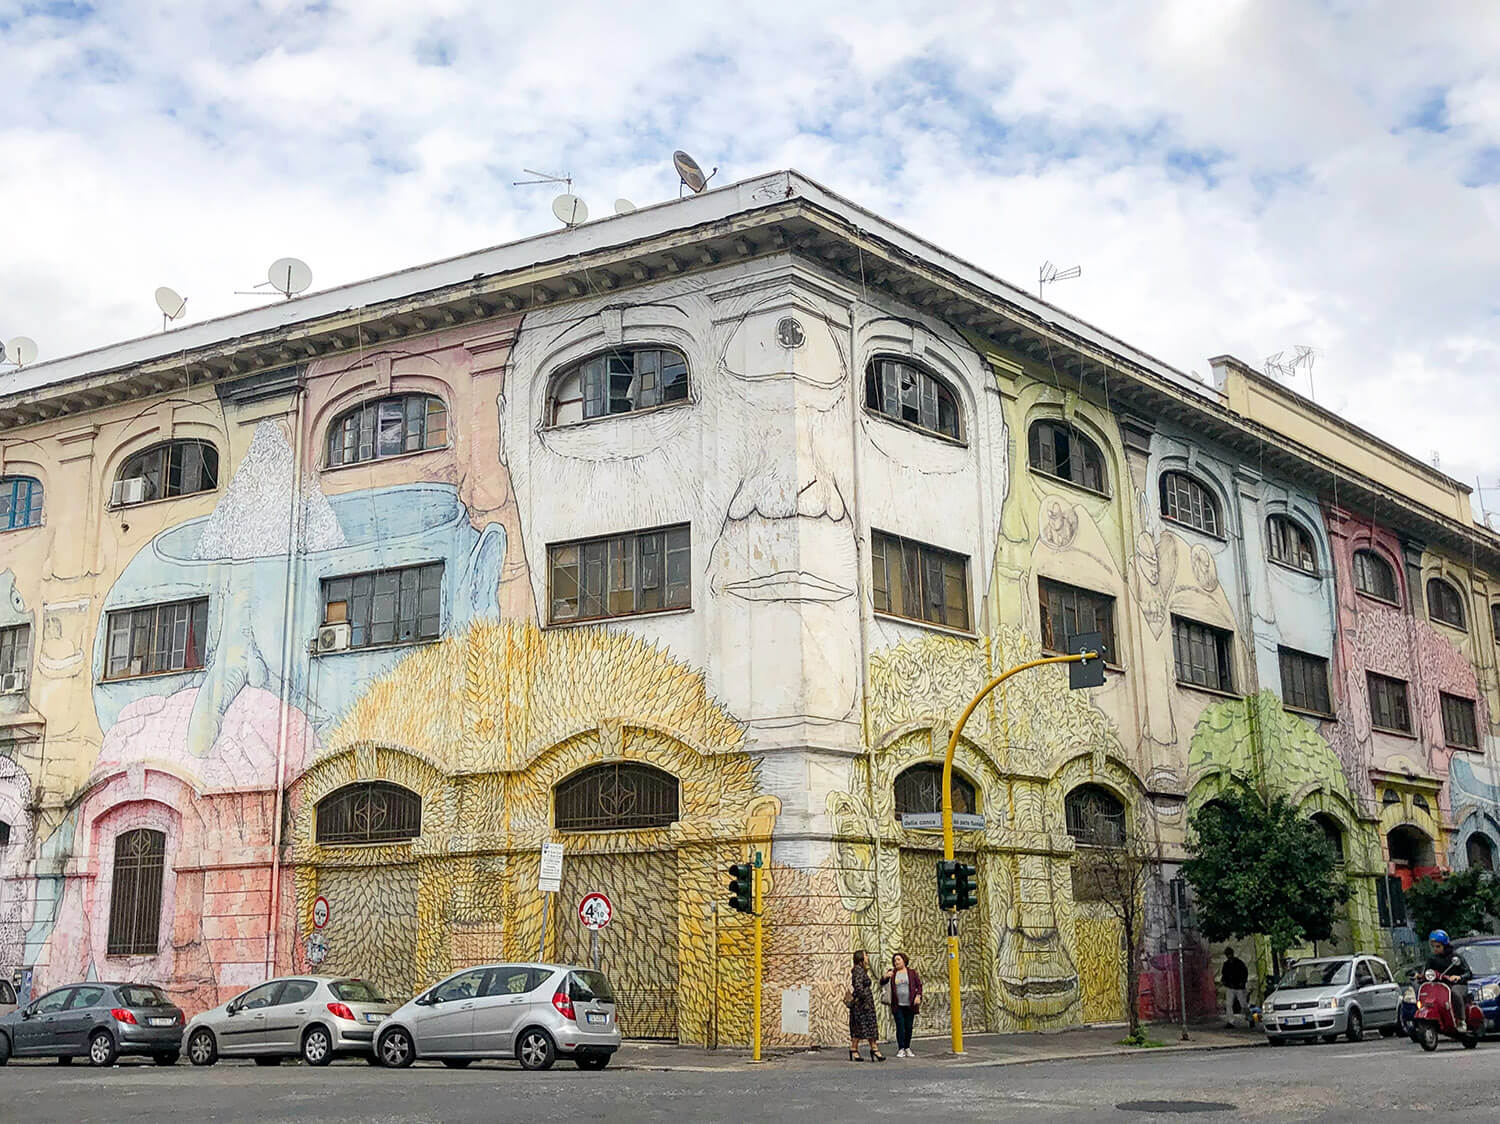 BLU street art Ostiense Explore Rome Travel Italy Instagrammable Walls Murals